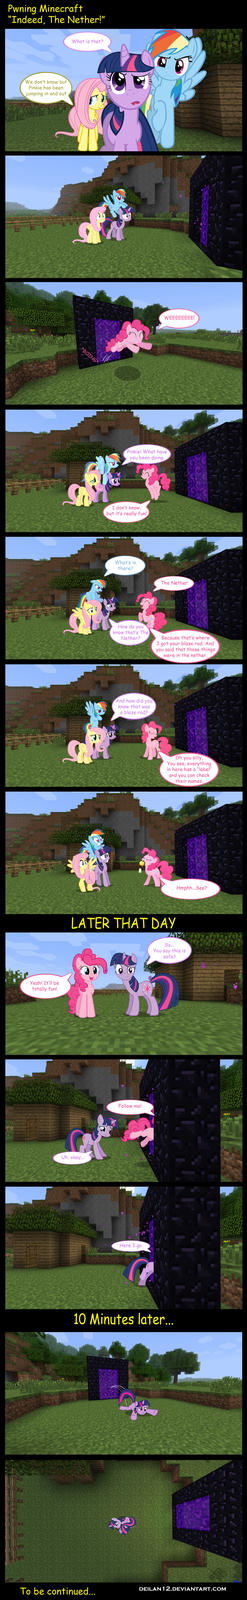 pwning_minecraft___indeed__the_nether_by_deilan12-d4joa6x.jpg